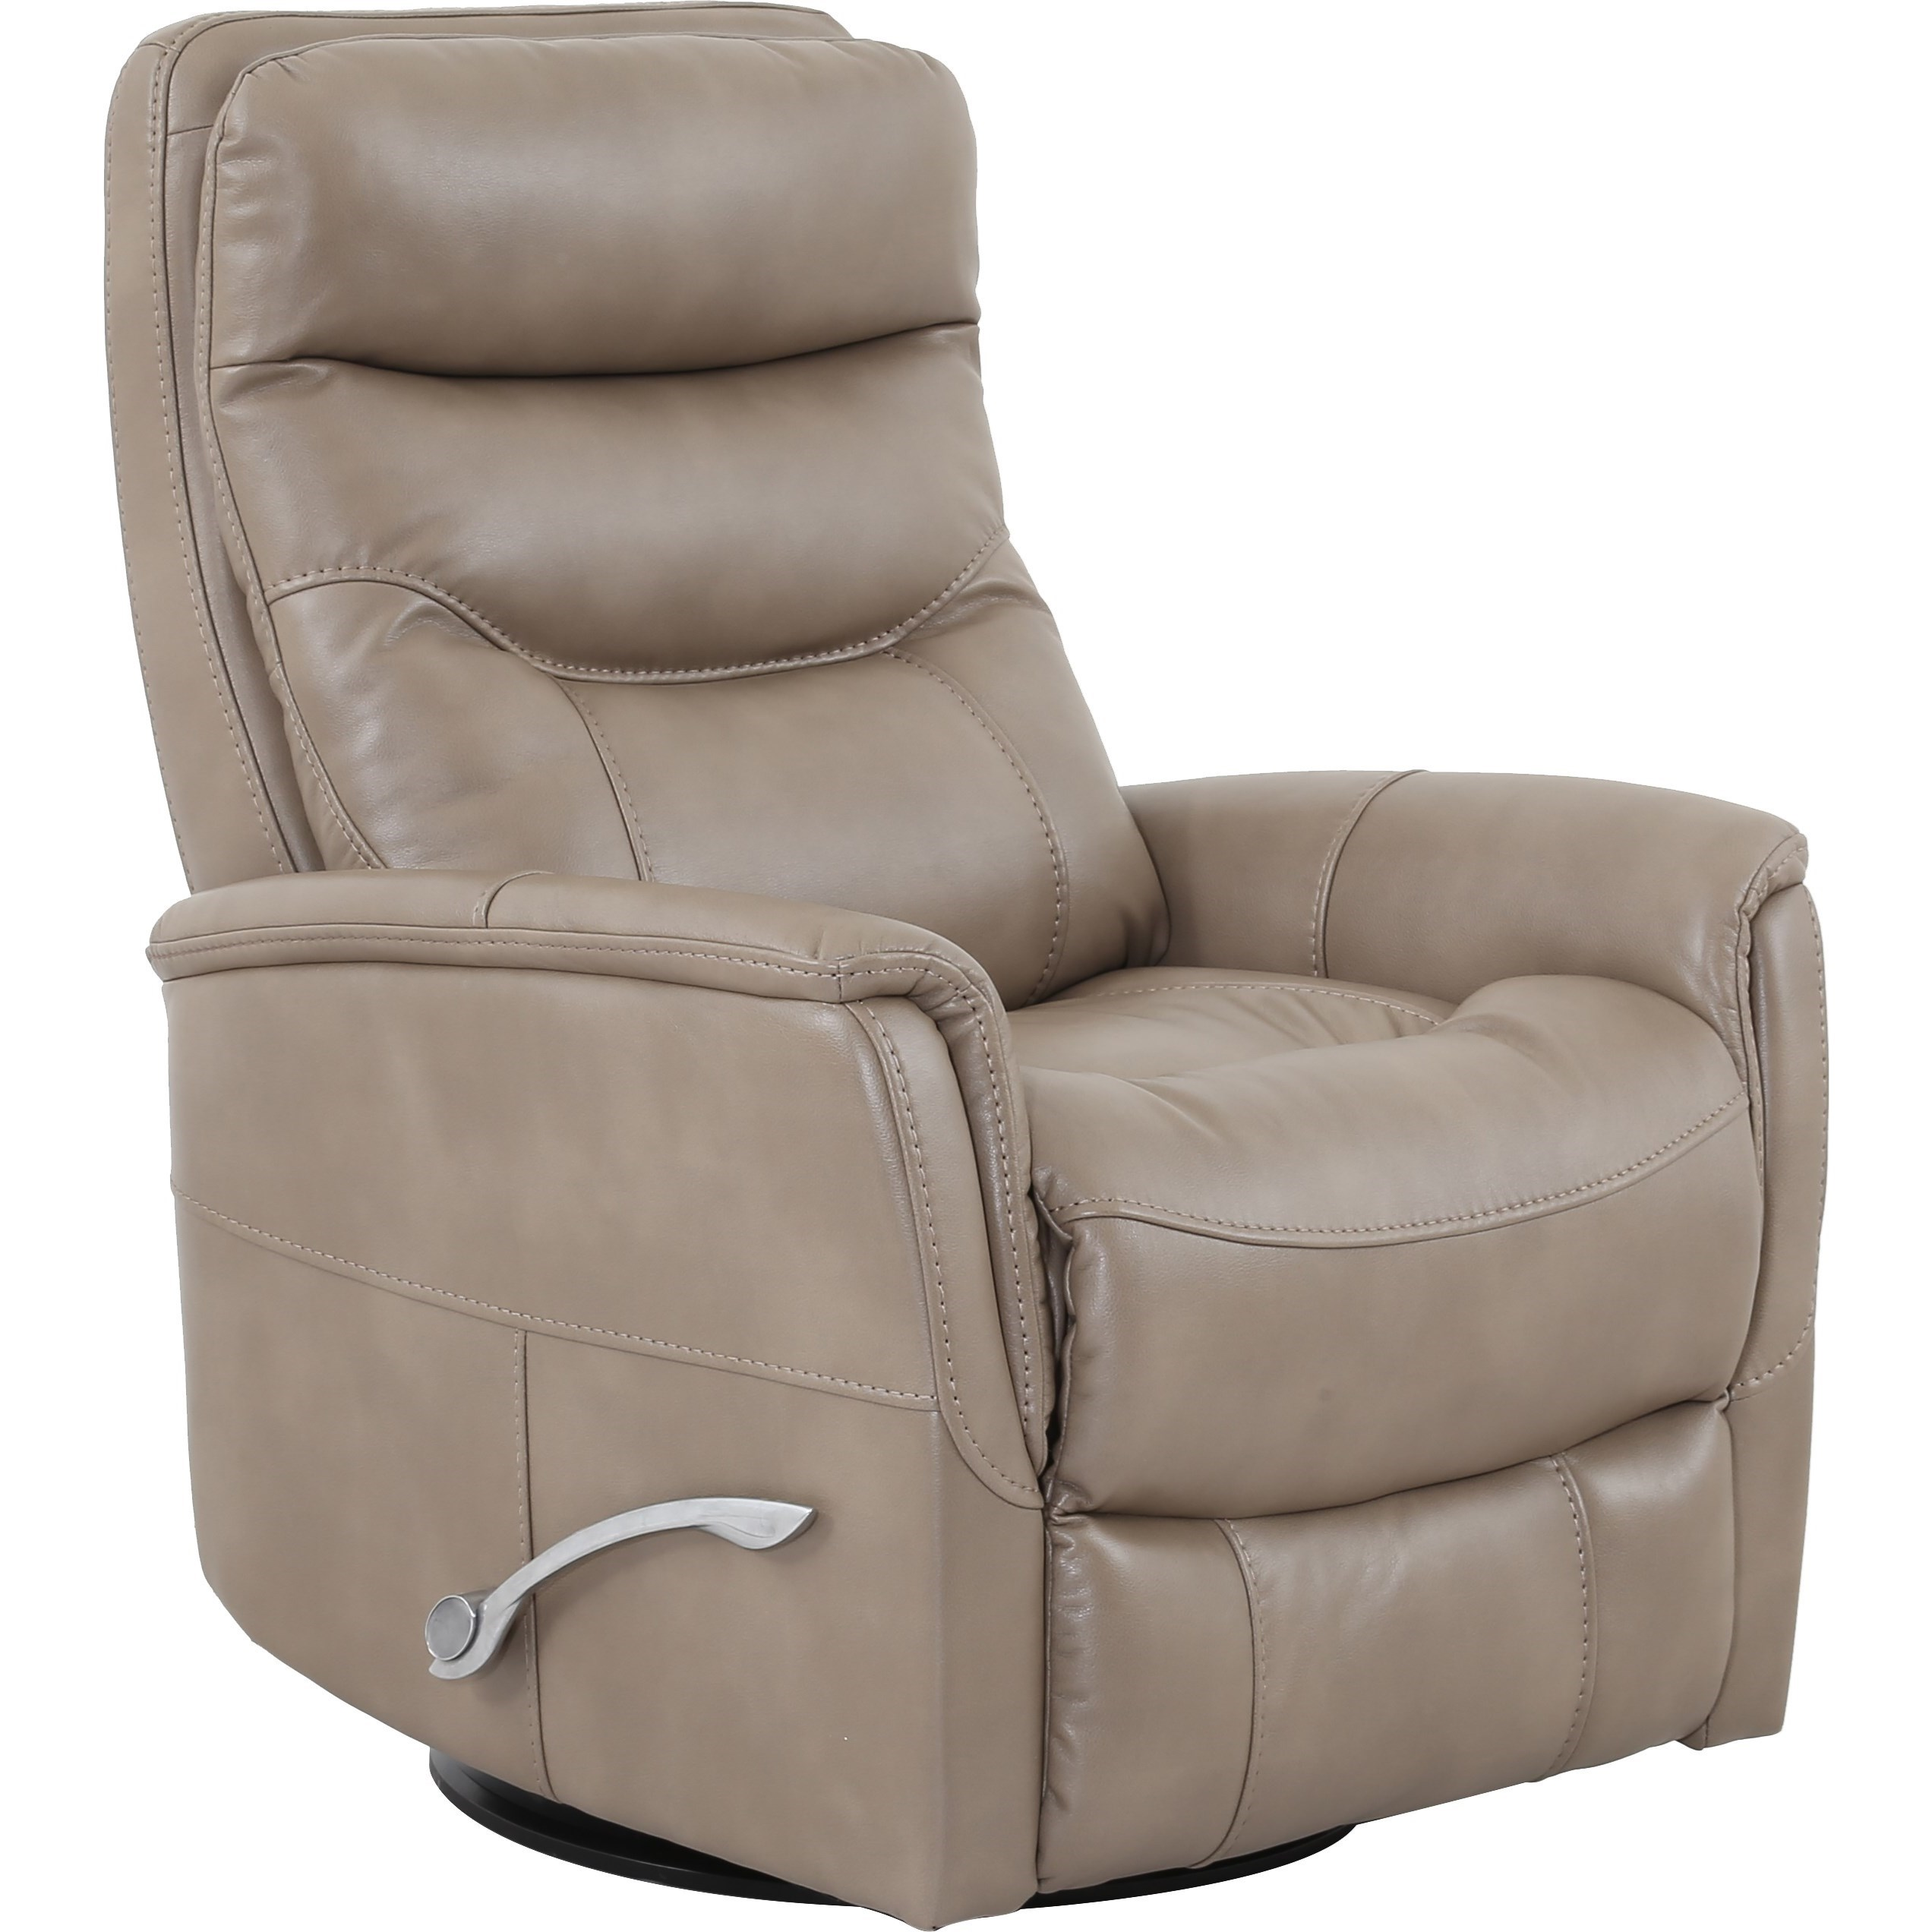 Gemini Swivel Glider Recliner by Parker Living at Miller Waldrop Furniture and Decor